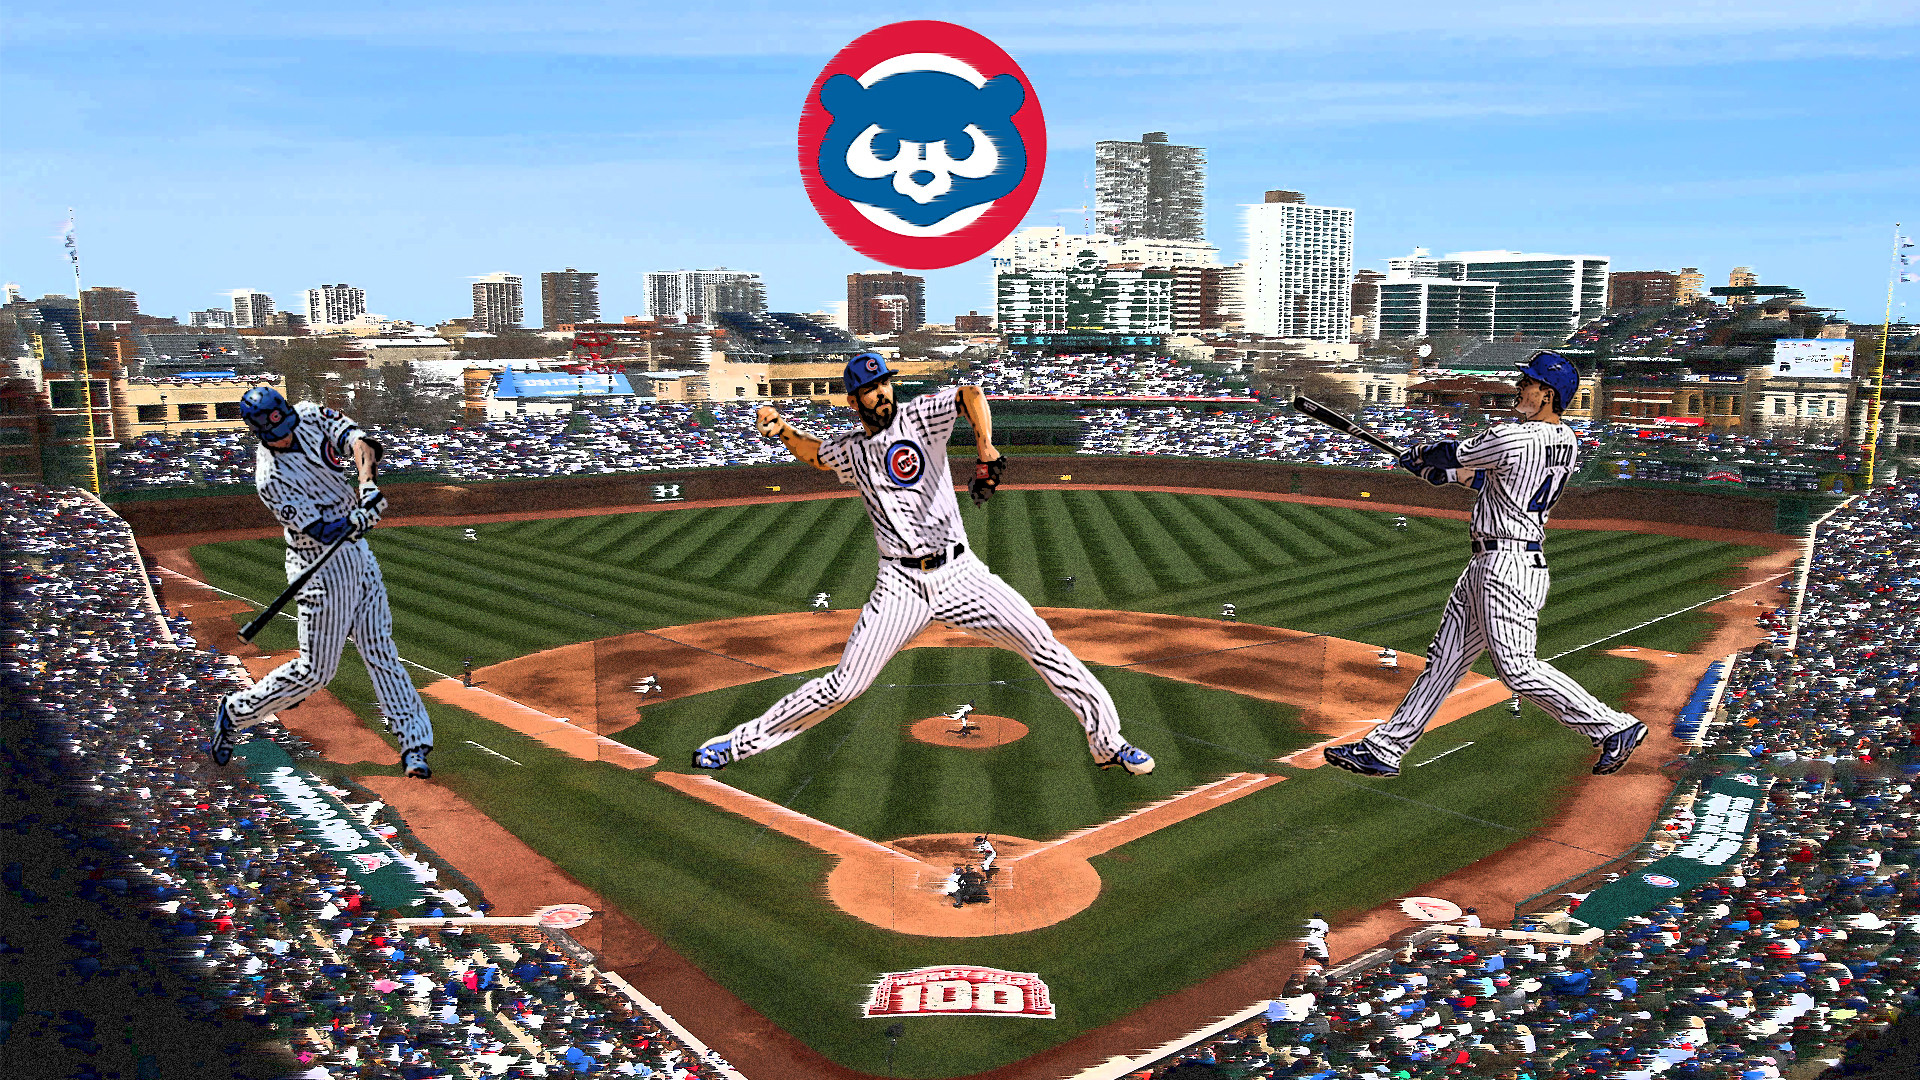 1920x1080 Chicago Cubs Backgrounds | PixelsTalk.Net